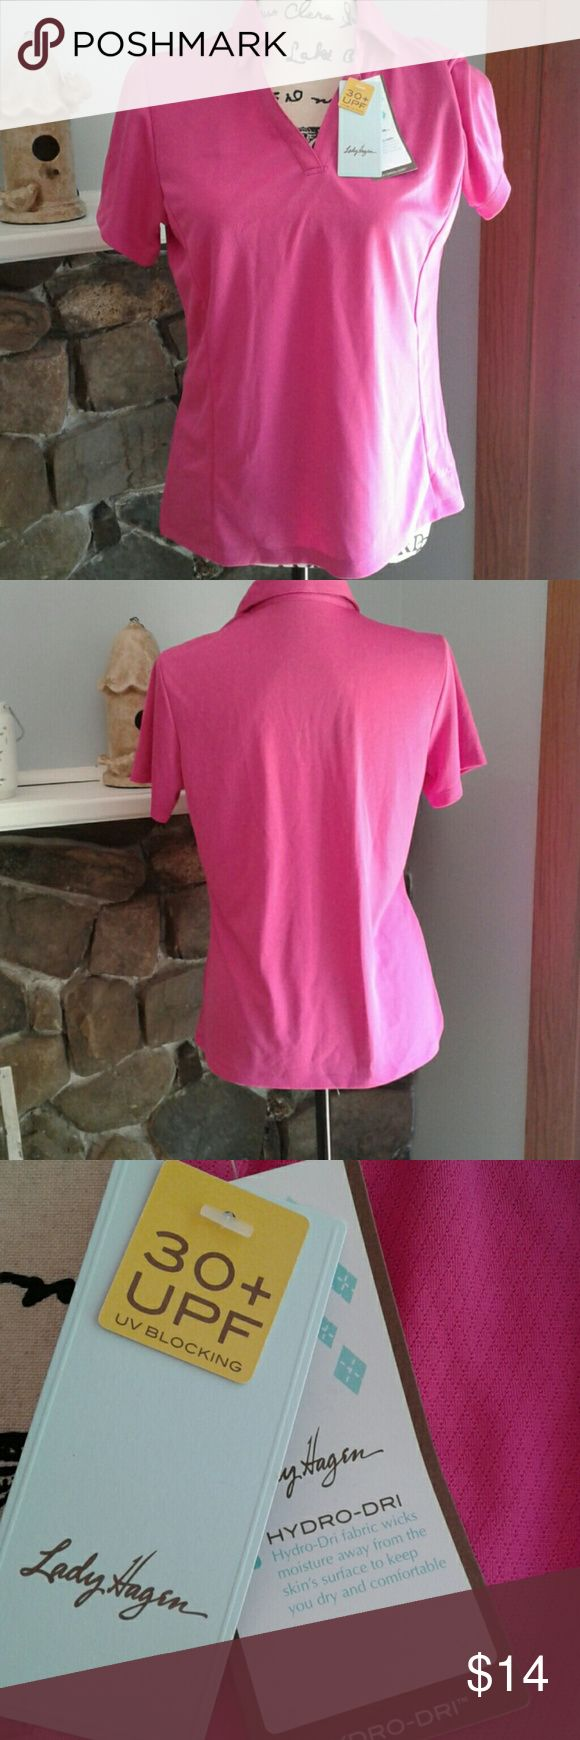 Lady Hagen Tennis Shirt For sale is a wonderful Lady Hagen tennis shirt. UV blocking. Hydro- Dri. Size Medium. NEW WITH TAGS. Offers welcome! Lady Hagen Tops Tees - Short Sleeve